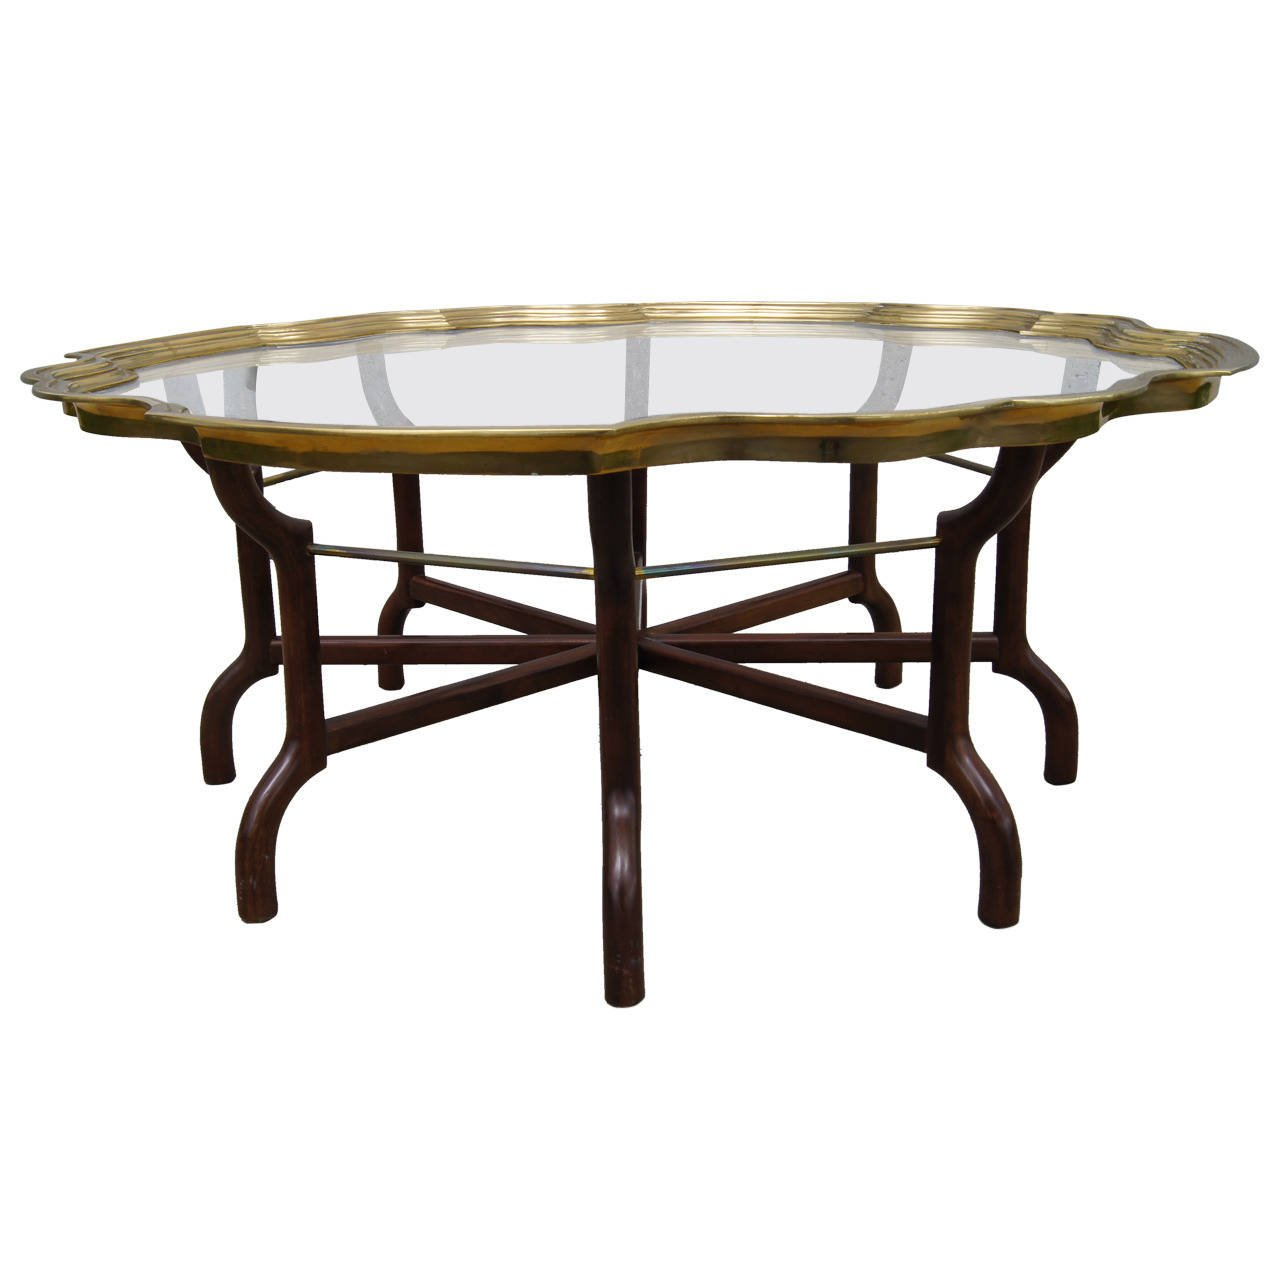 Brass And Glass Tray Top Coffee Table Attributed To Baker Furniture Baker Furniture Furniture Coffee Table [ 1280 x 1280 Pixel ]